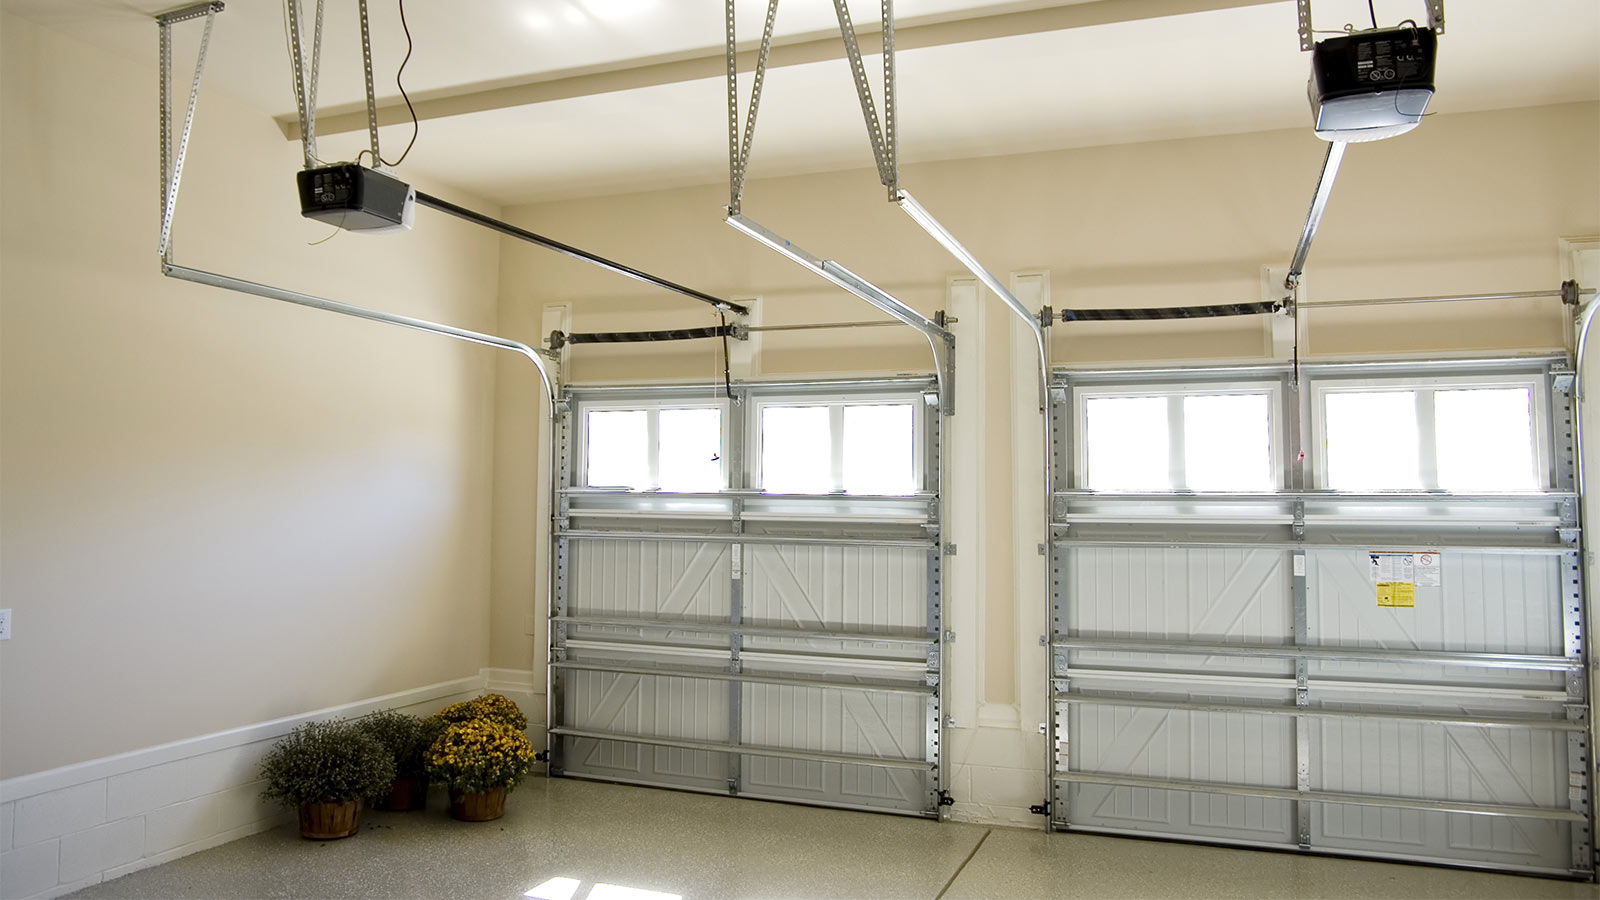 Sectional Garage Doors from Fire Shutters Essex & London suppliers.